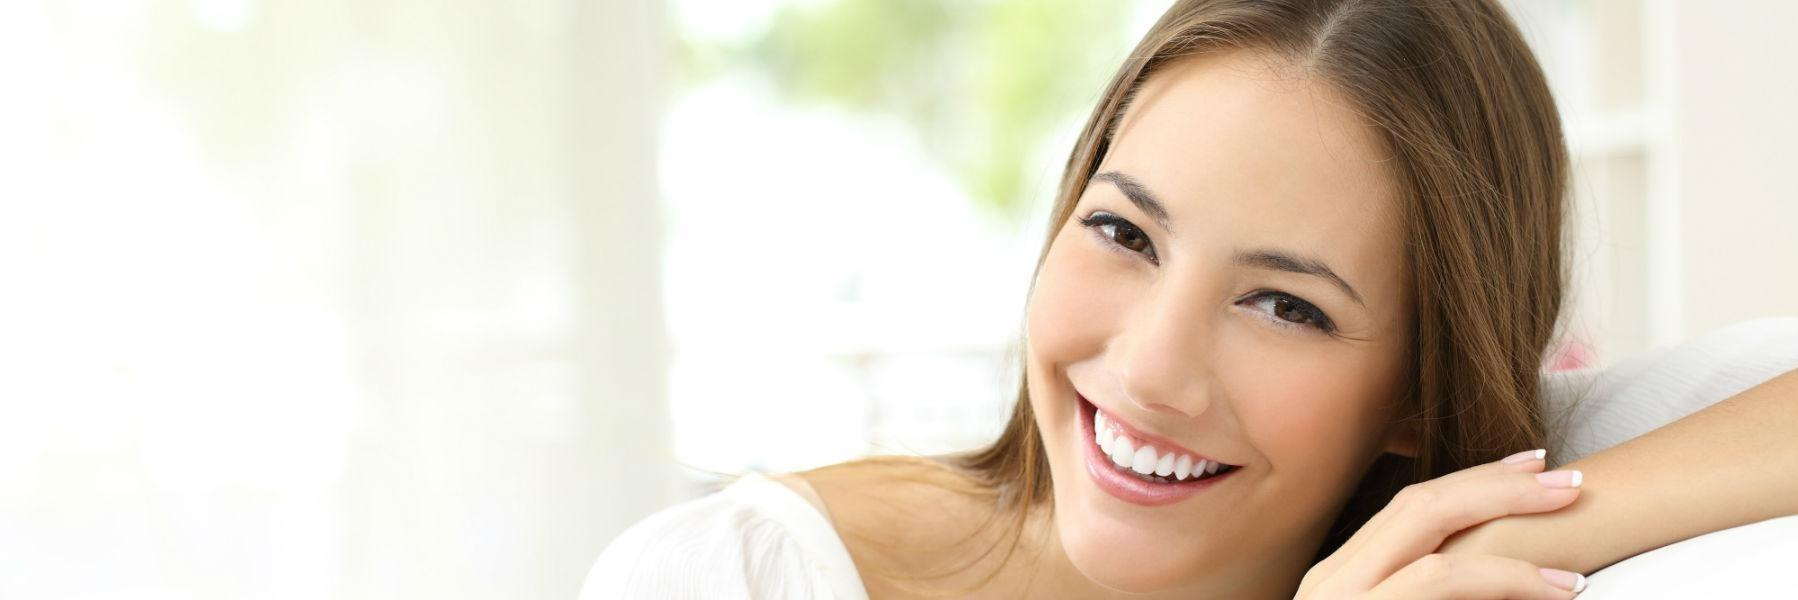 Cosmetic Dentistry | Advanced Dentistry by Design